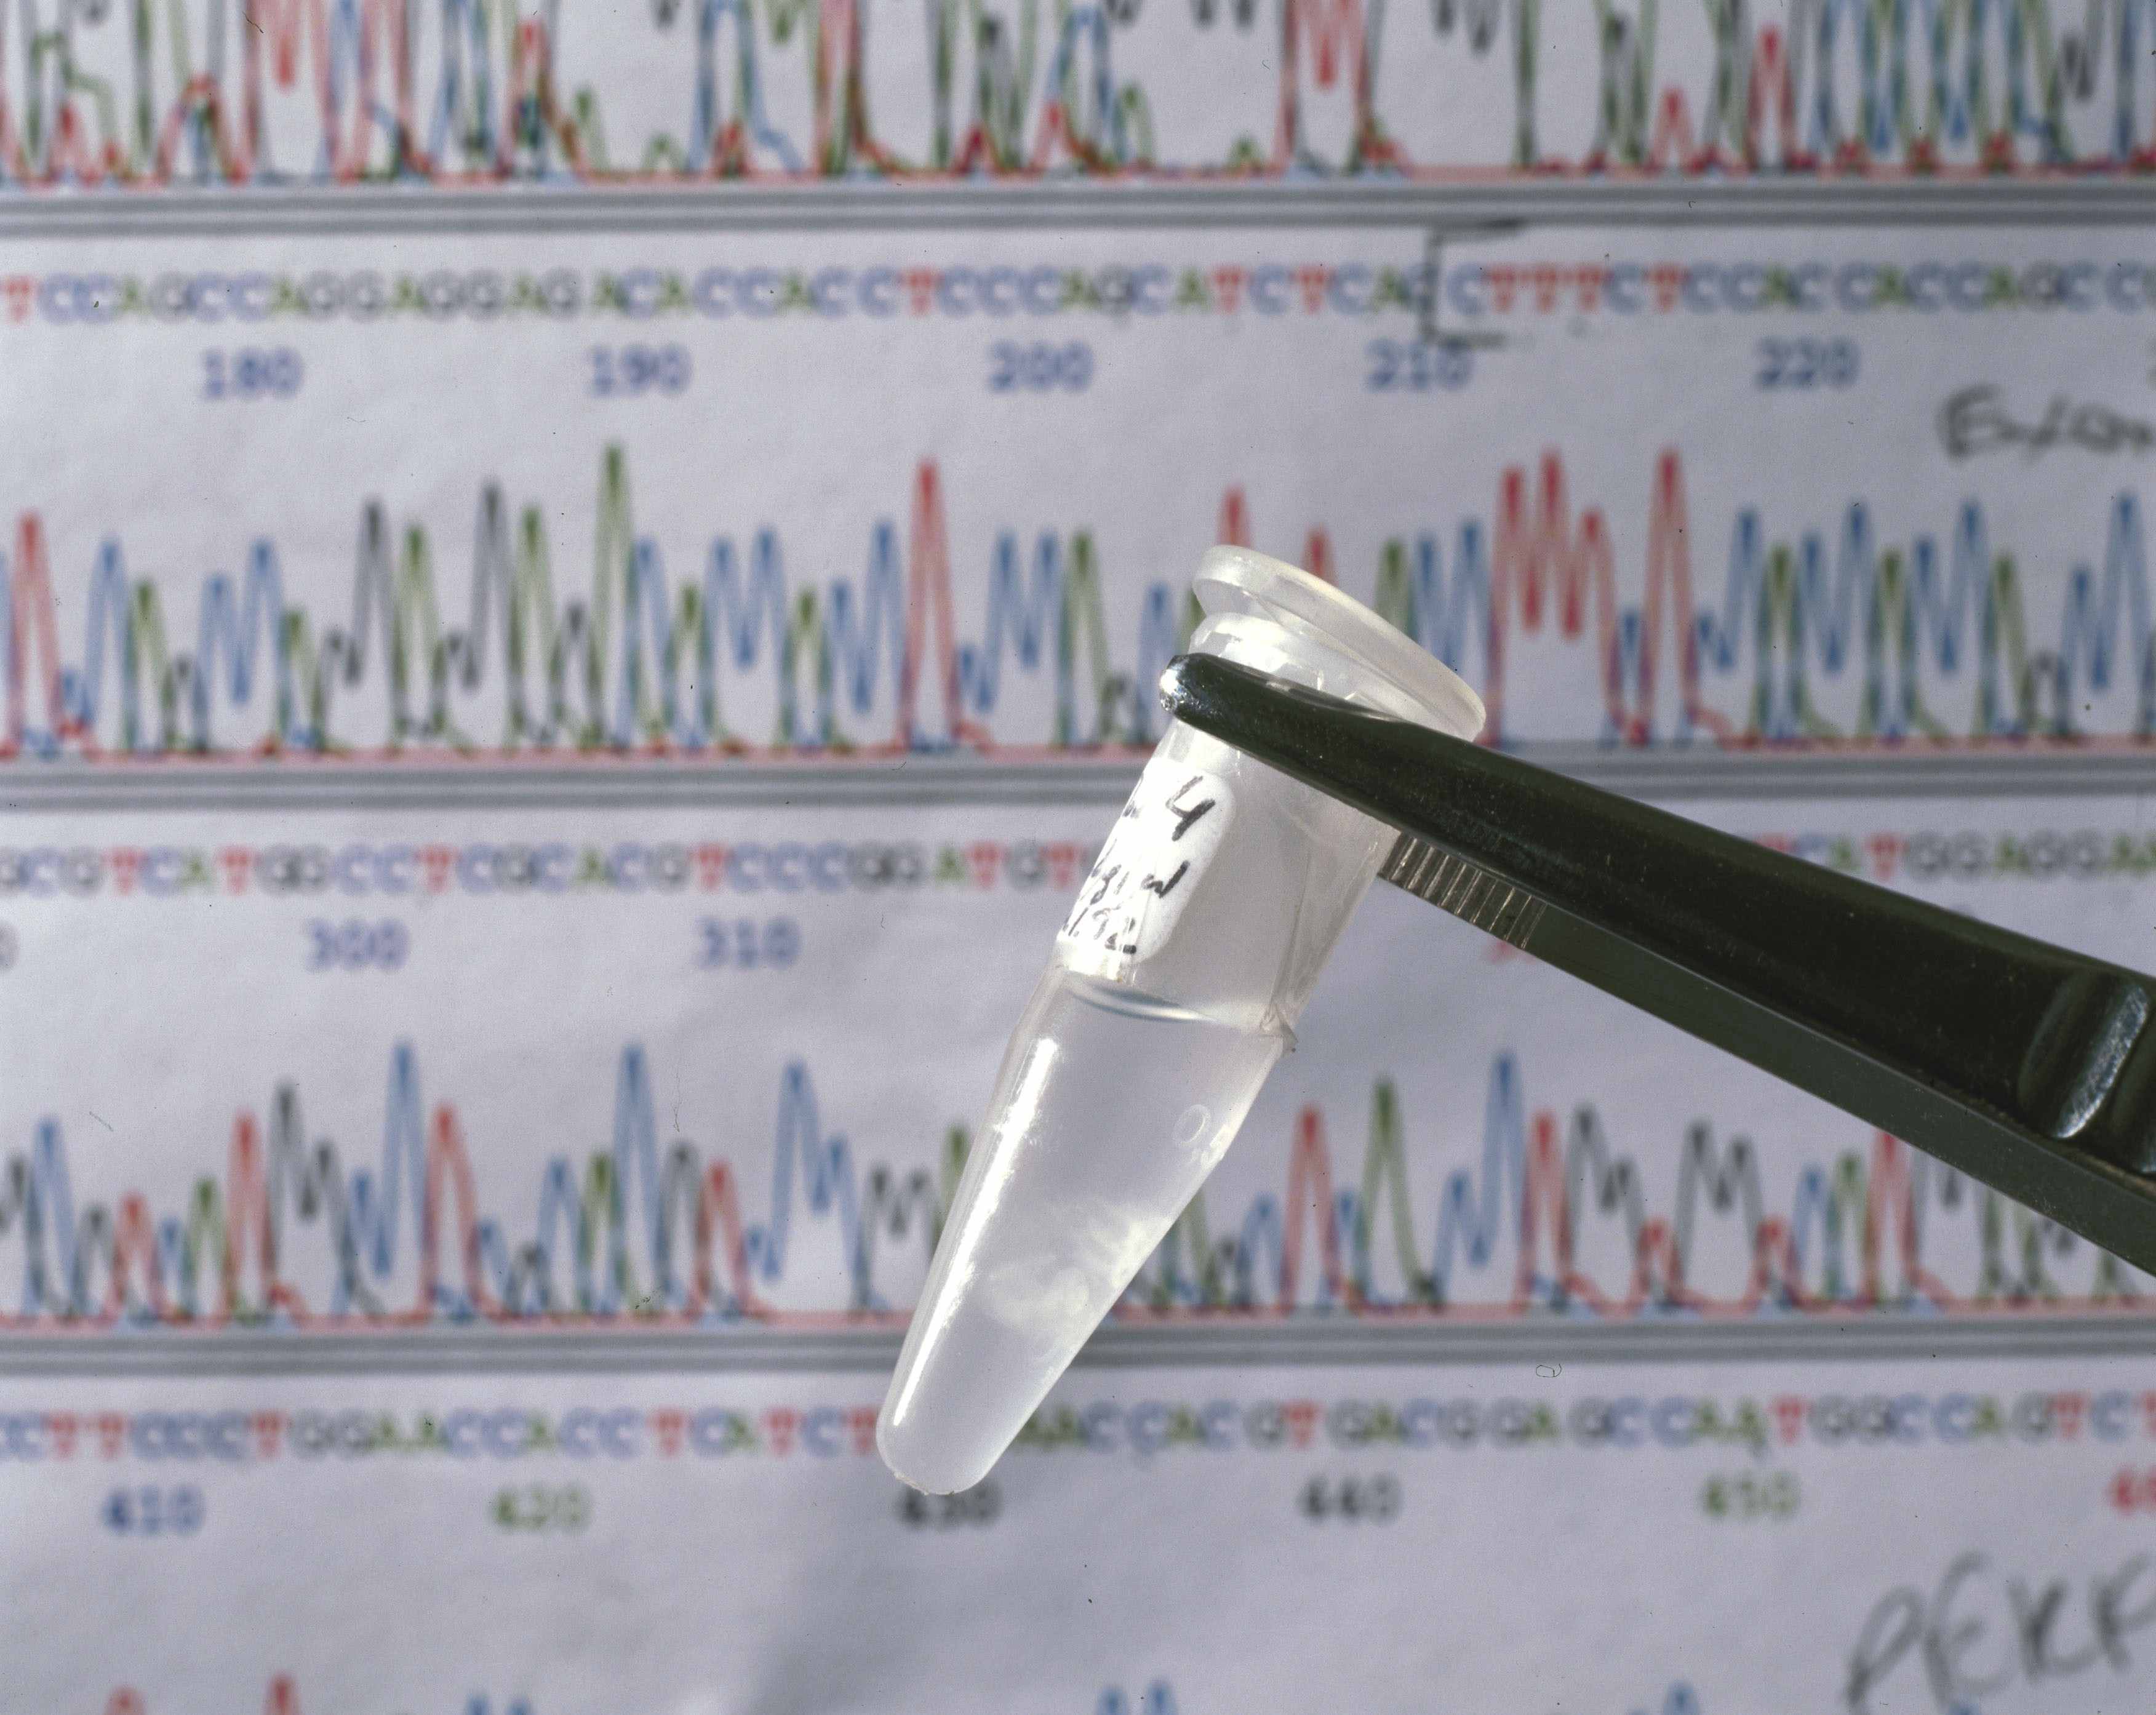 A sequencing chromatograph showing a DNA sequence and a sample of DNA from the human genome mapping project.